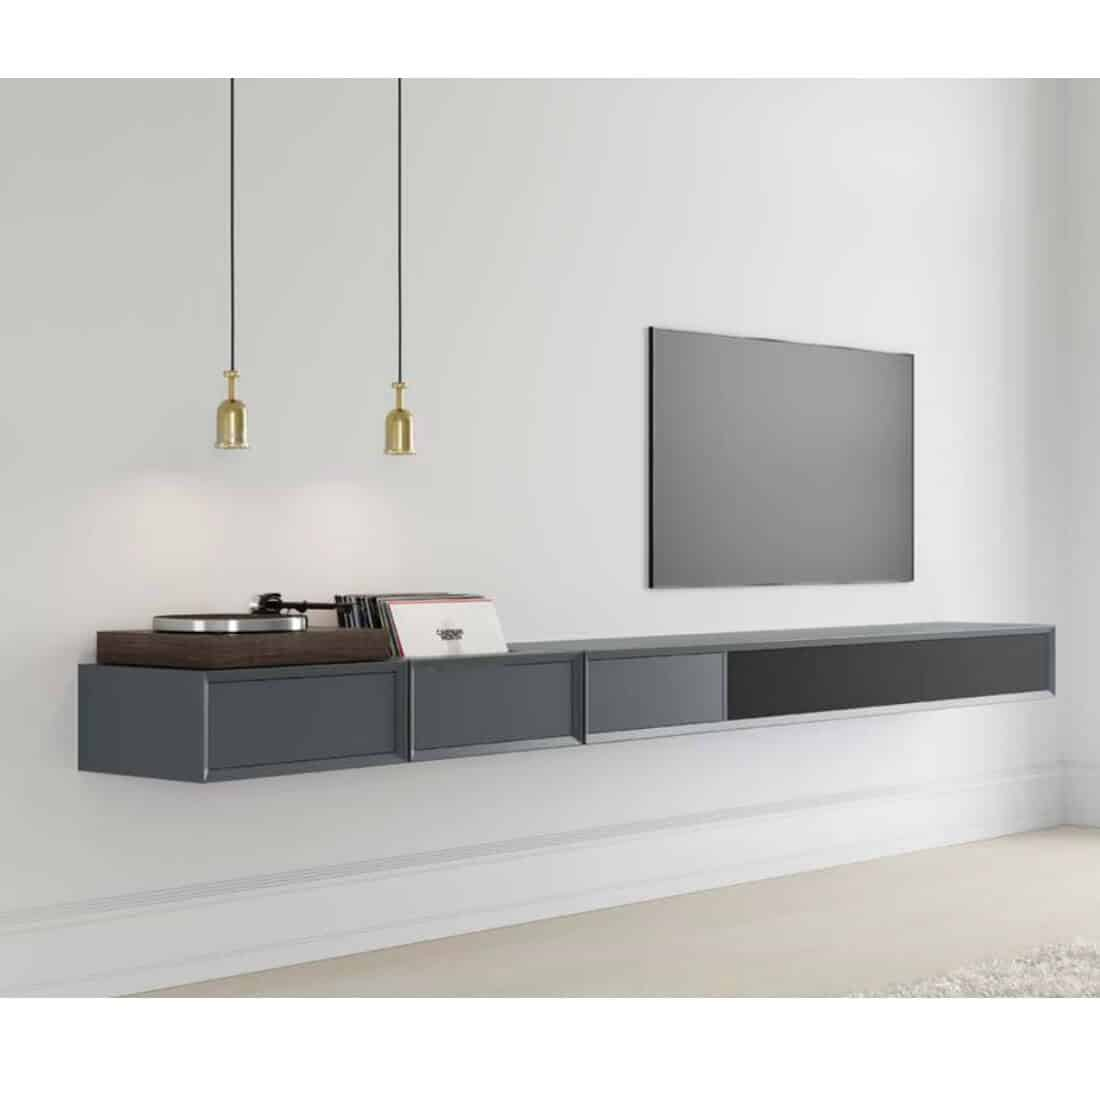 Meubles Hifi Et Home Cinema Clic